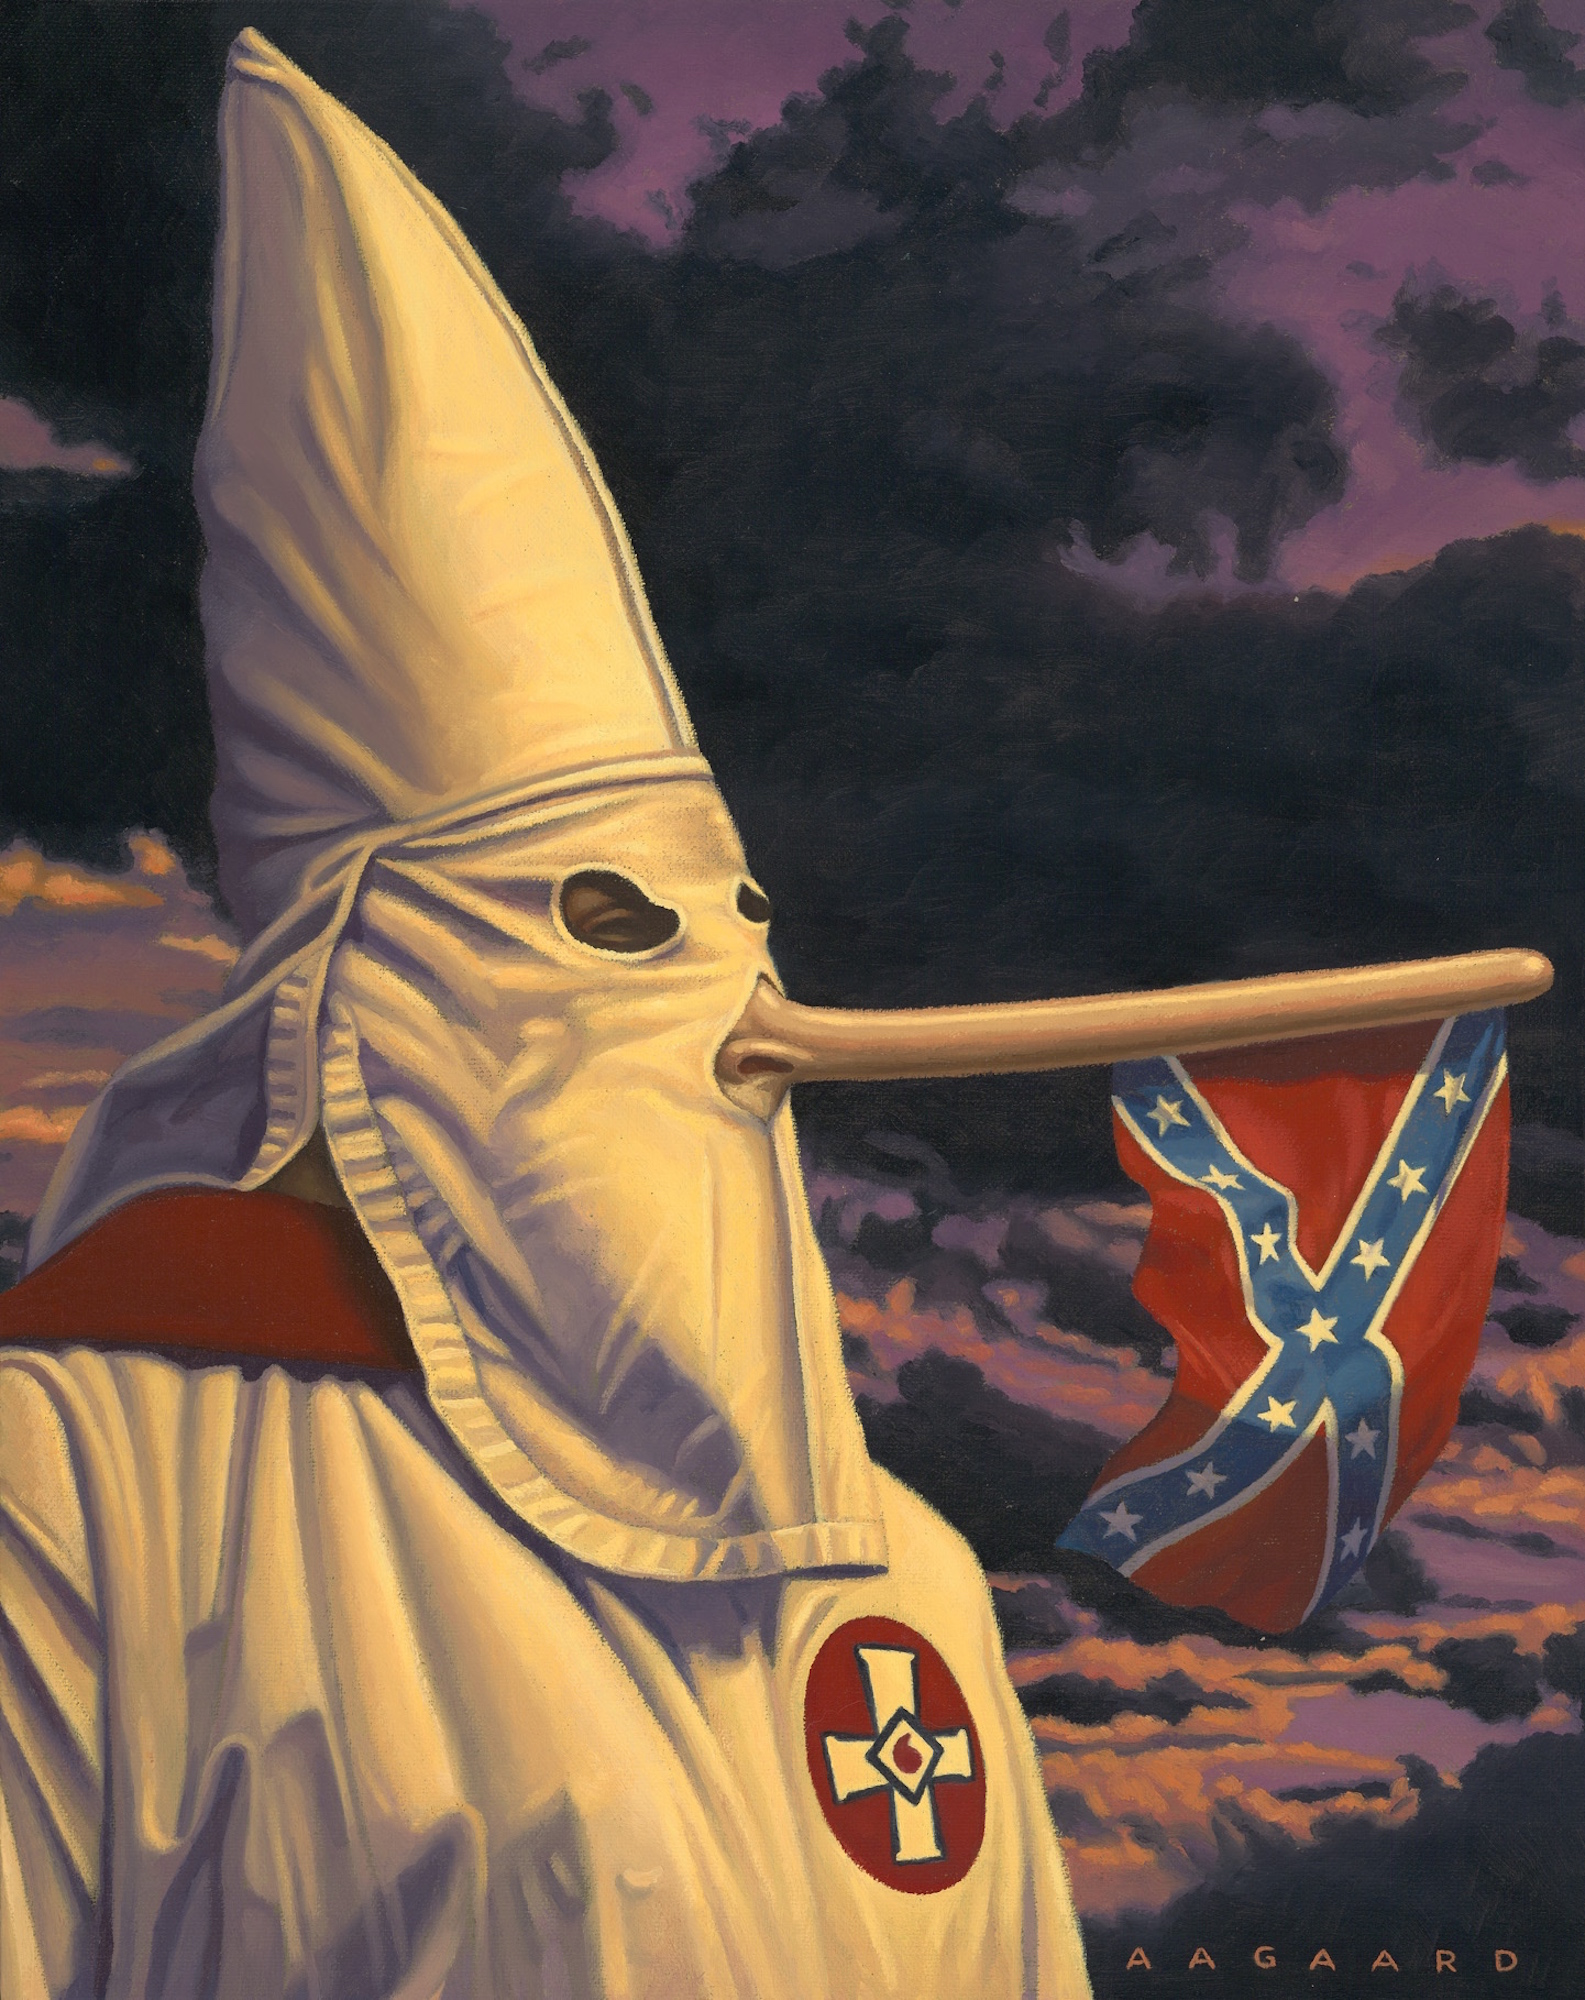 I swore I'd never use the tired Pinocchio cliche for lying, but I succumbed to the flagpole usage opportunity. This painting calls out the Heritage (vs Hate) rationale used by many after the church shootings in Charleston SC.